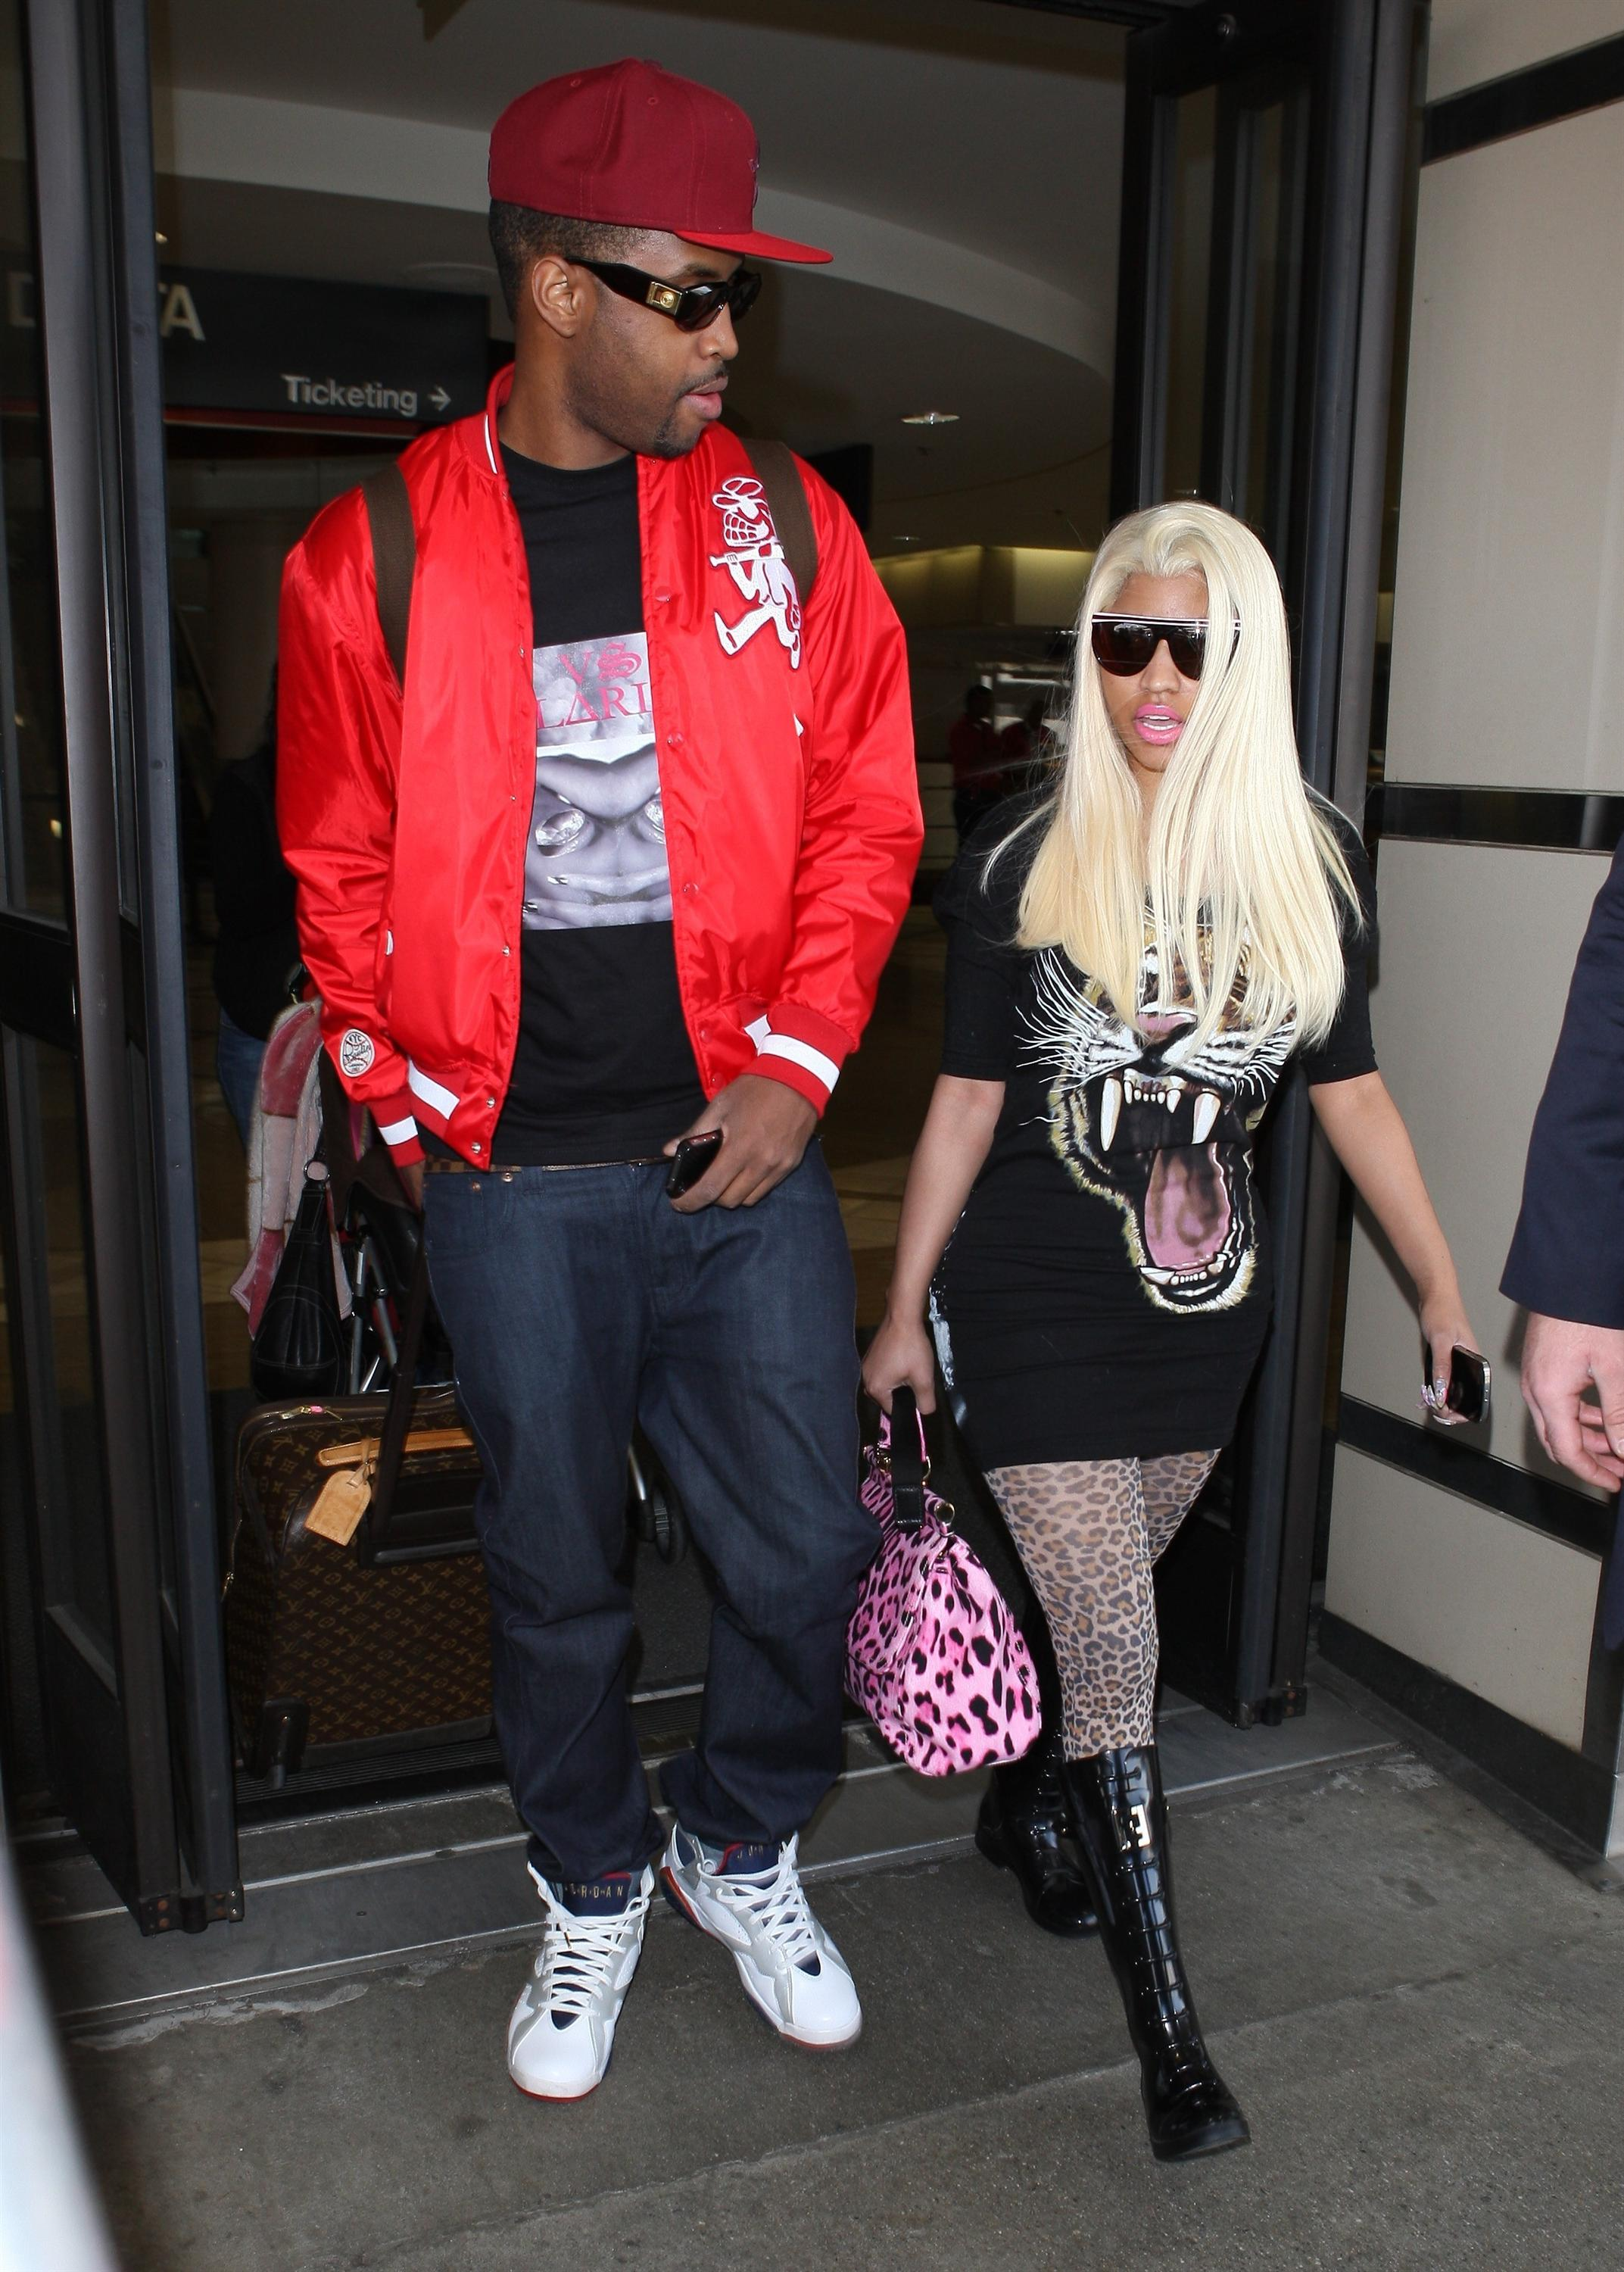 Nicki Minaj Spotted At LAX Hot Shots: Nicki Minaj Gets Shady In LAX